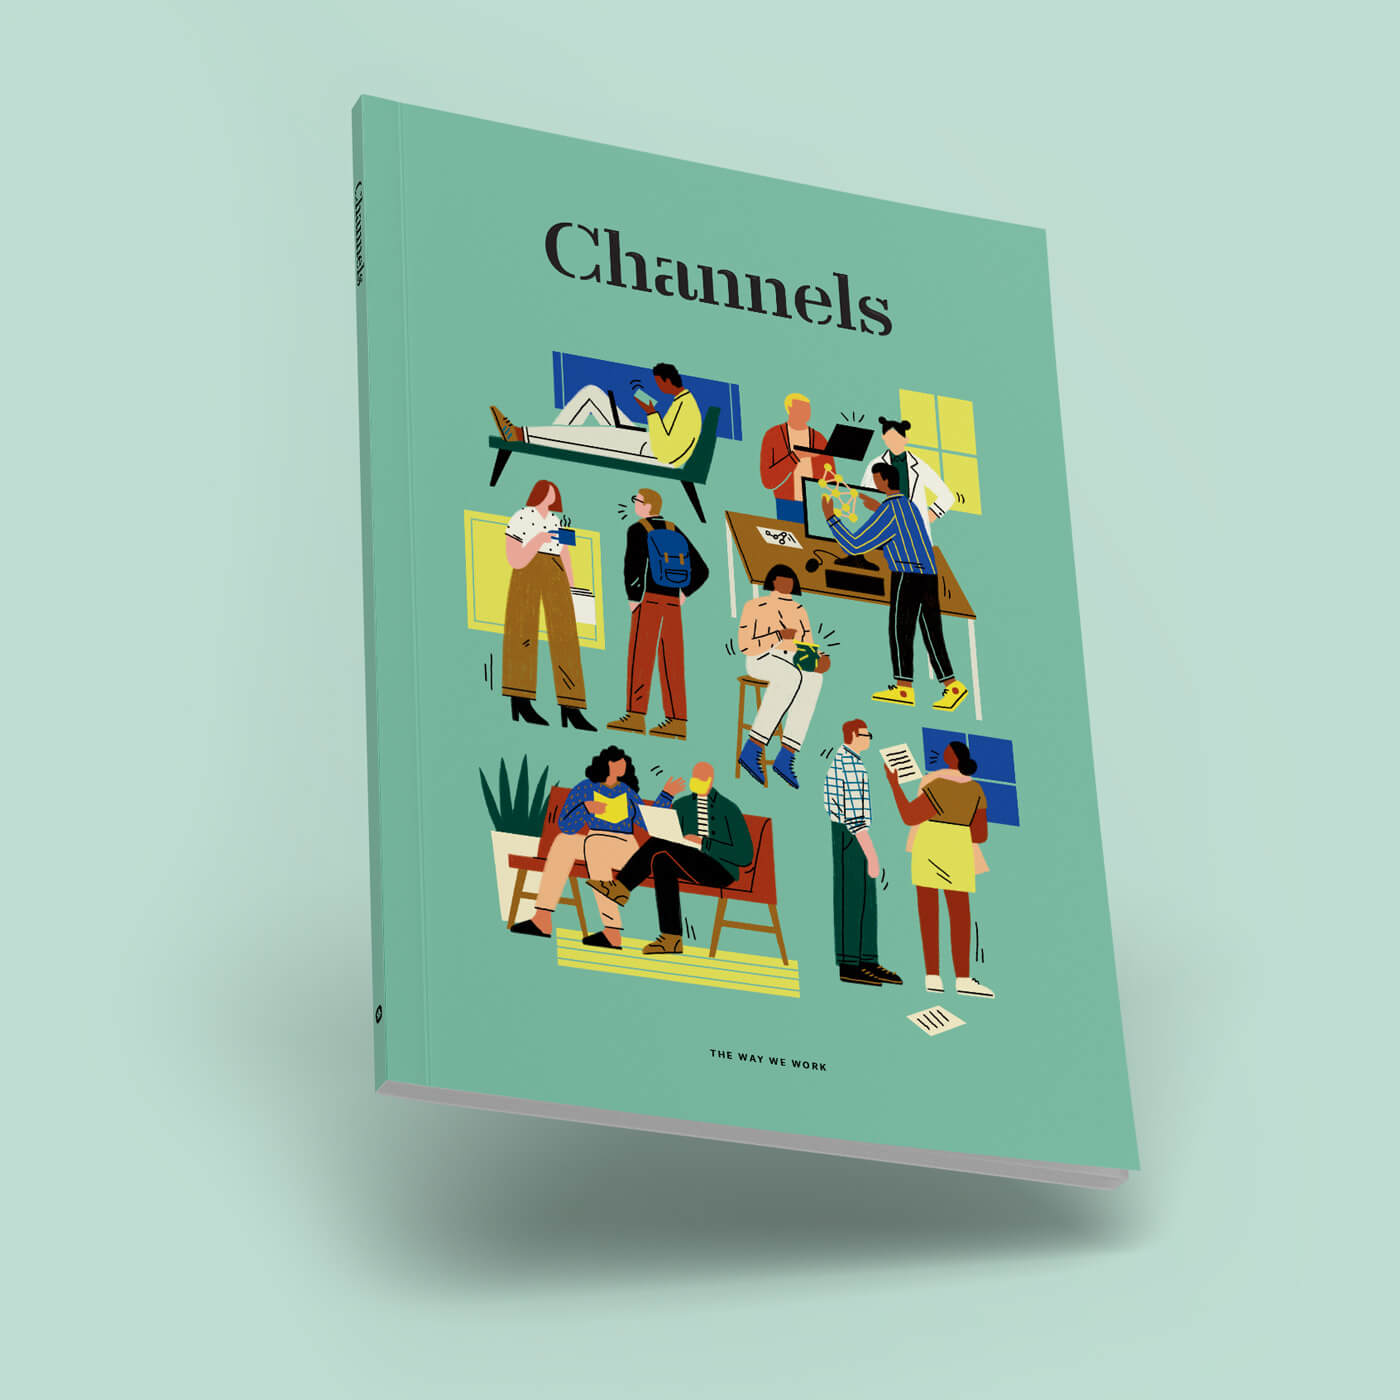 Channels - A magazine from Slack that explores how the modern workplace is evolving.View Project →